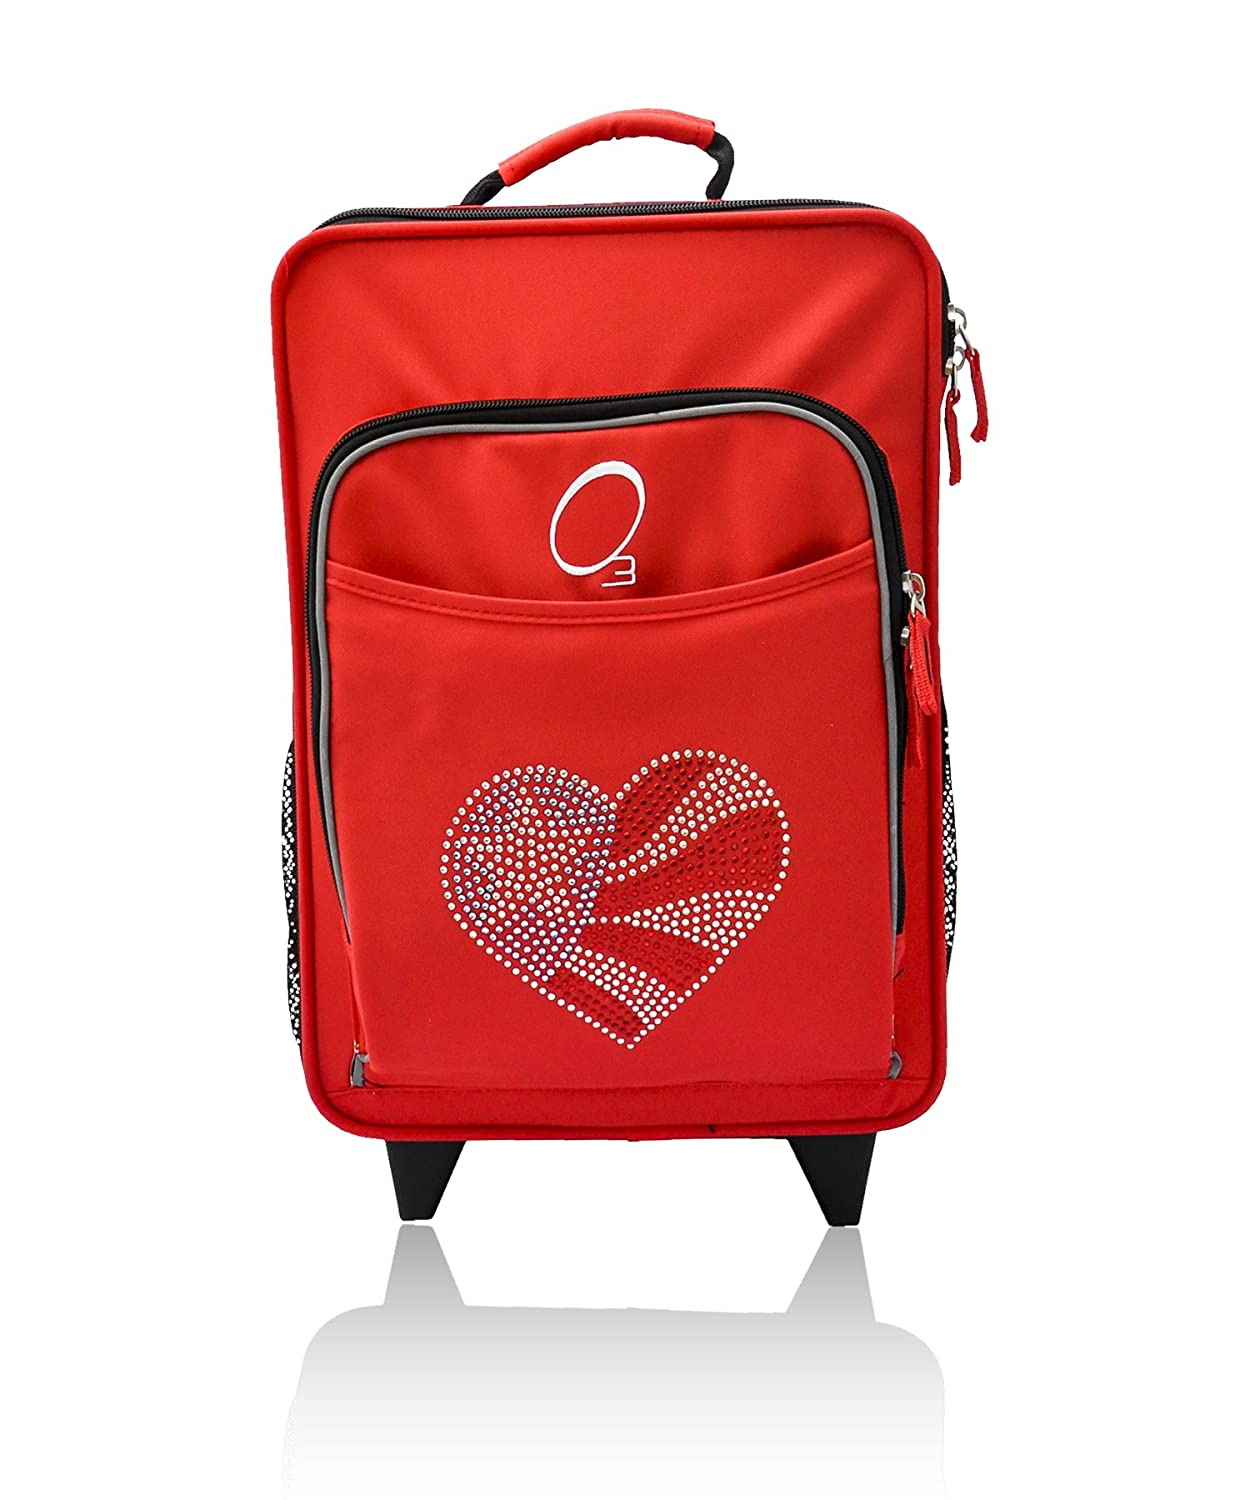 Obersee Kids Luggage With Integrated Cooler O3LK001